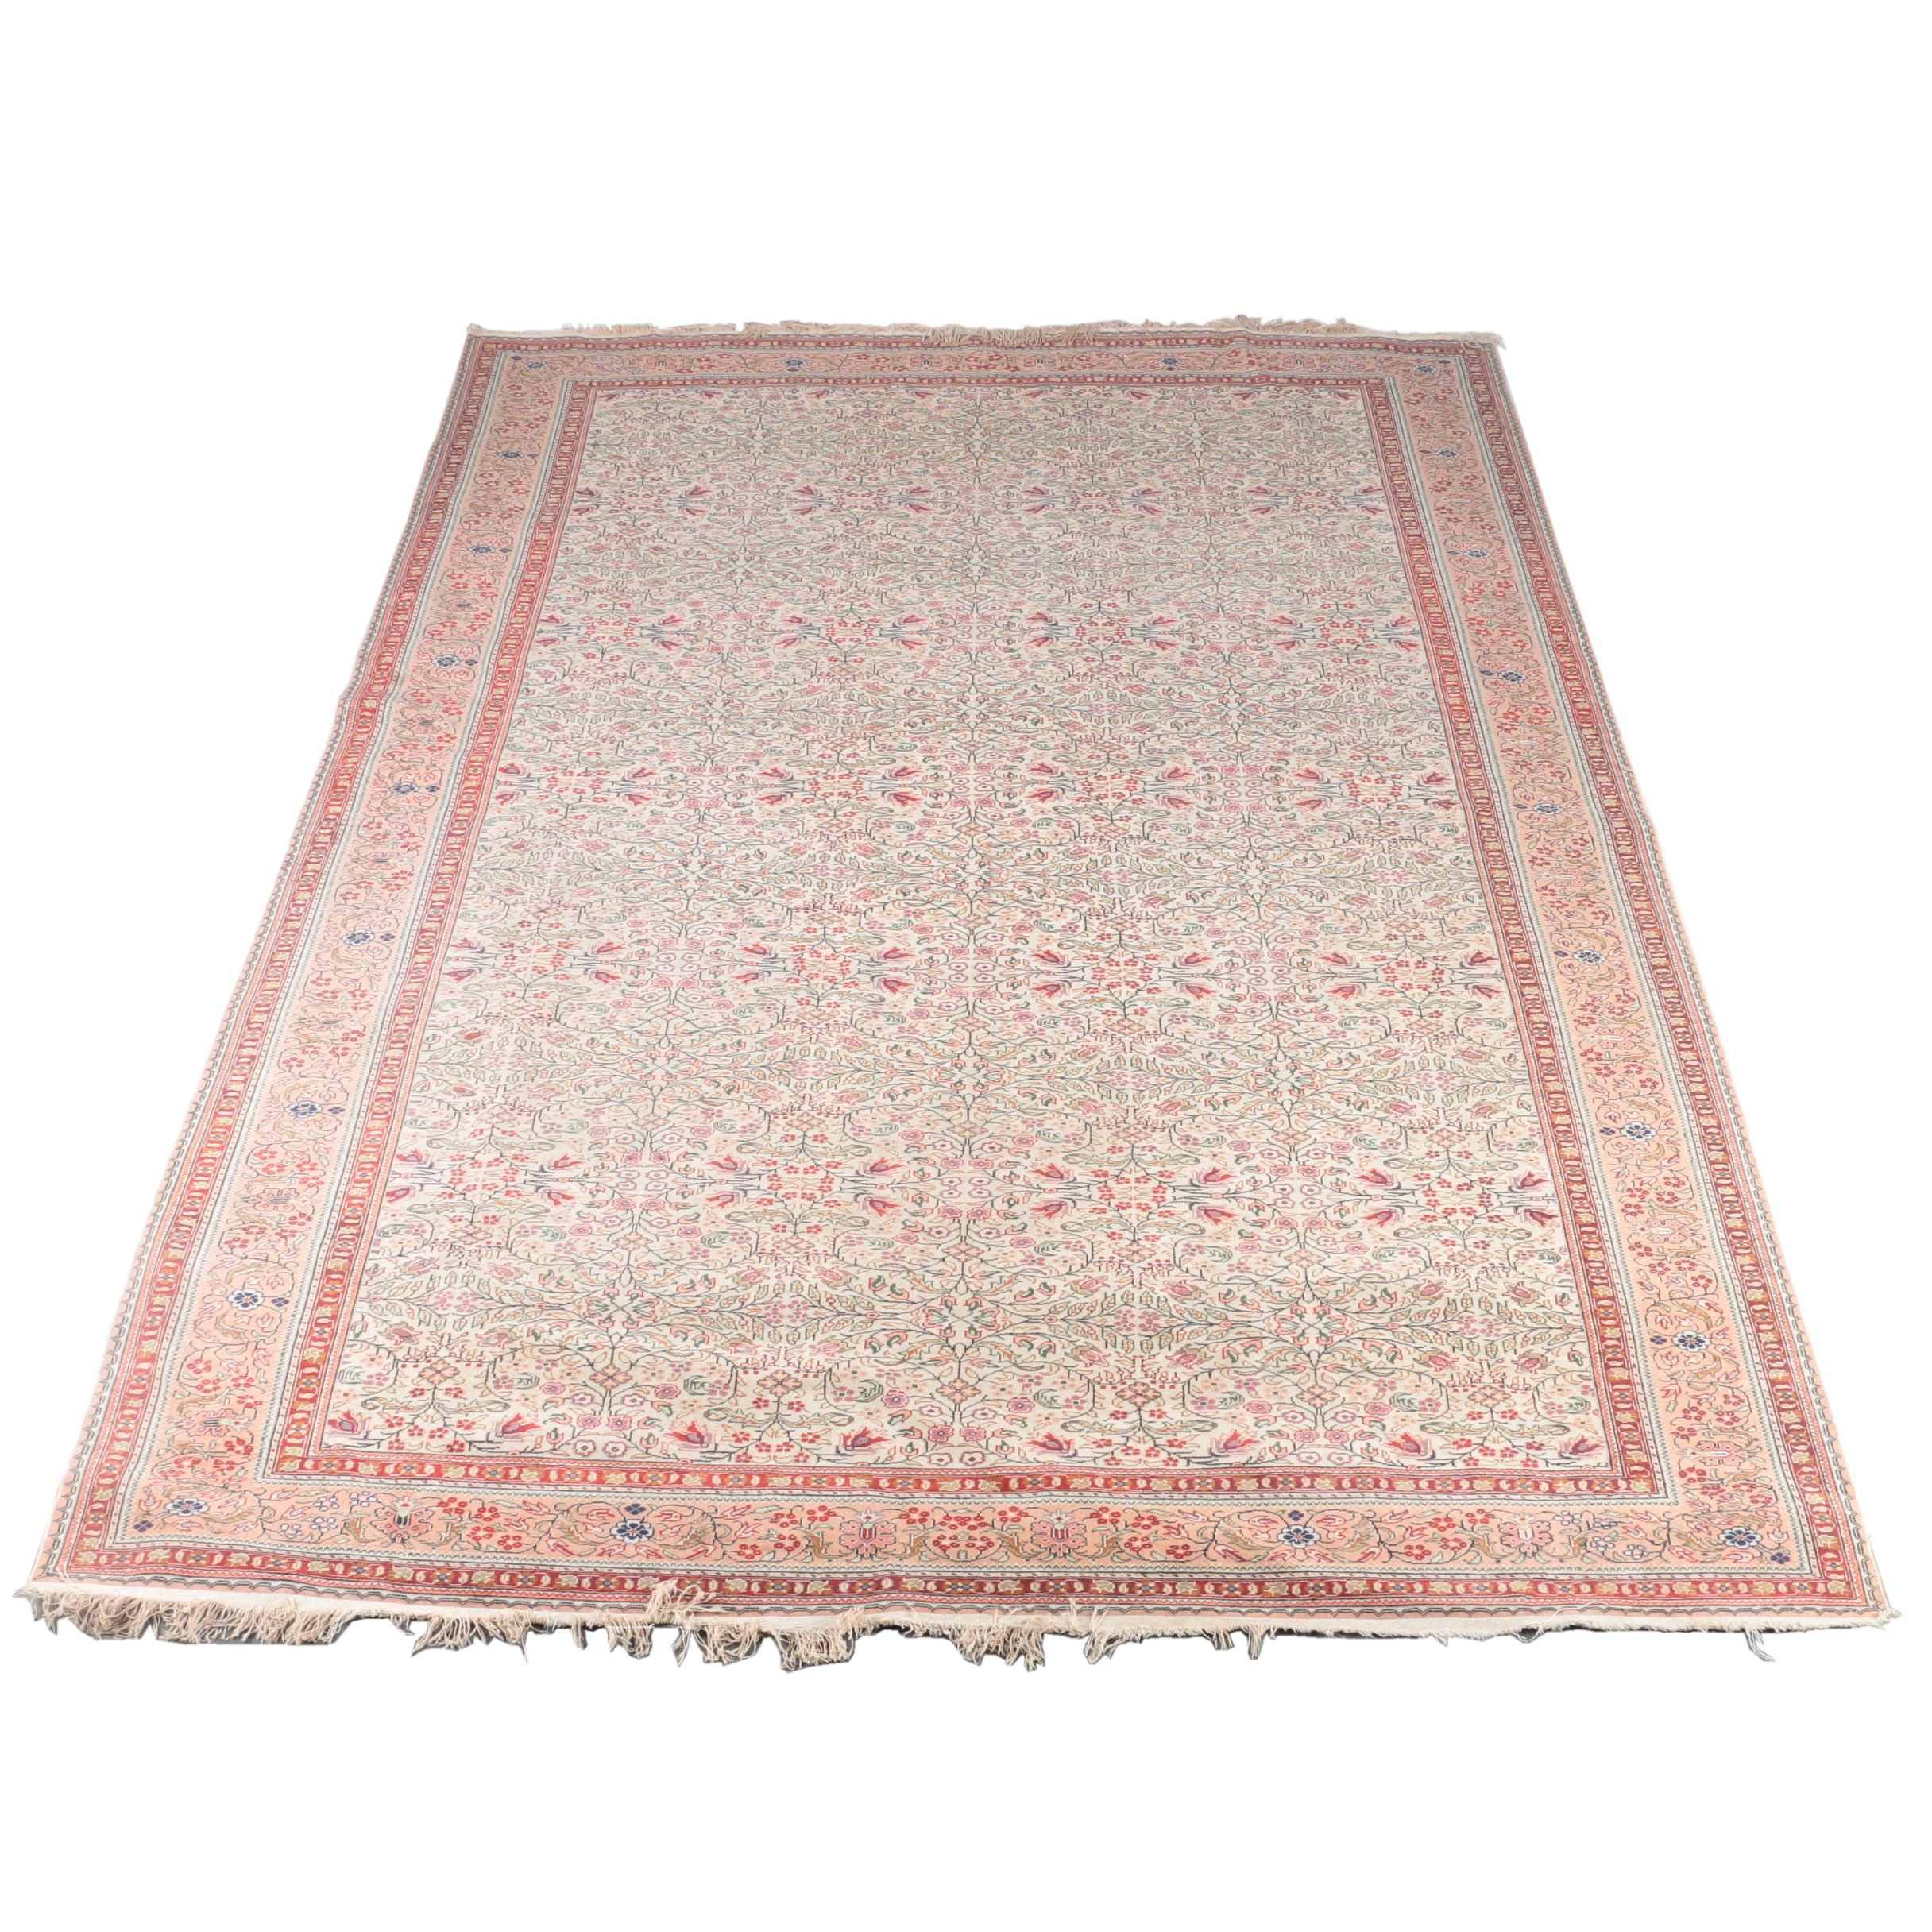 Power Loomed Persian Inspired Area Rug